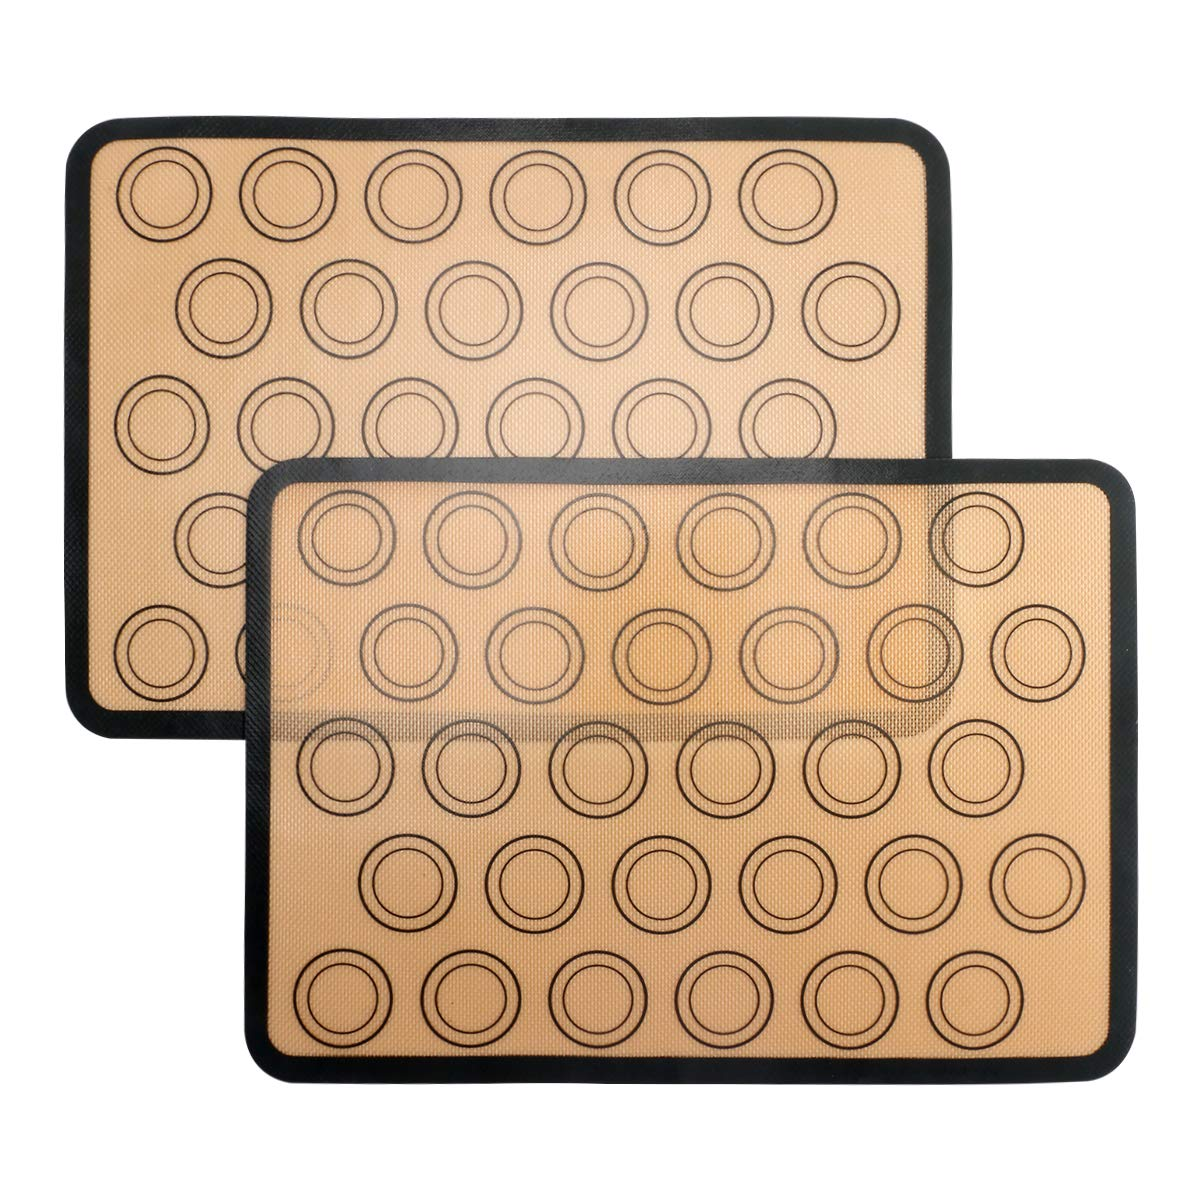 Silicone Baking Mat, 2-Pack Non-Stick Silicone Baking Sheet for Bake Pans & Rolling, Half Sheet (16-1/2' x 11-5/8') Silicon Liner for Macaron Pastry Cookie Bun Bread Making KAILEDI